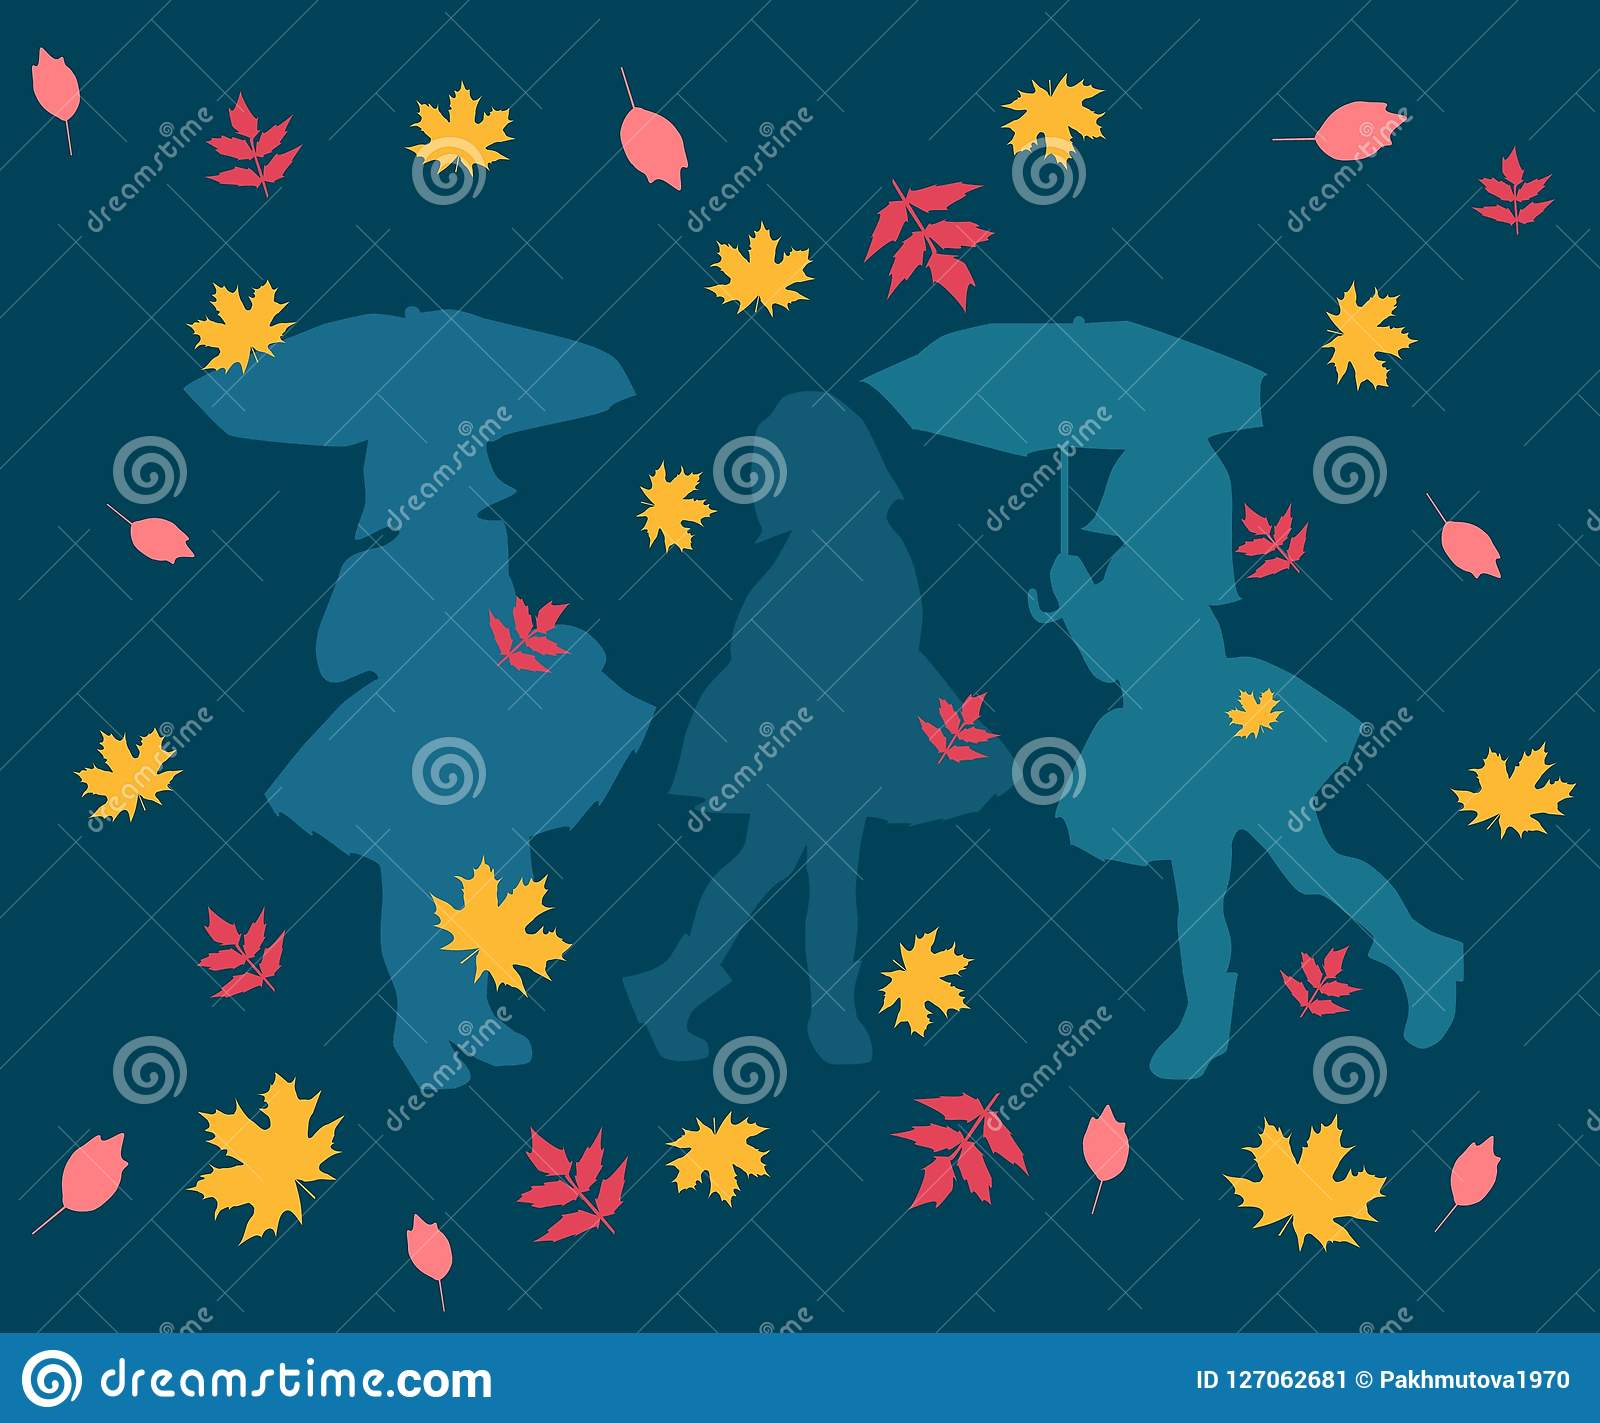 Pattern, abstract, illustration, design, art, autumn, wallpaper, colorful, leaf, flower, seamless, decoration, flowers, blue, yell